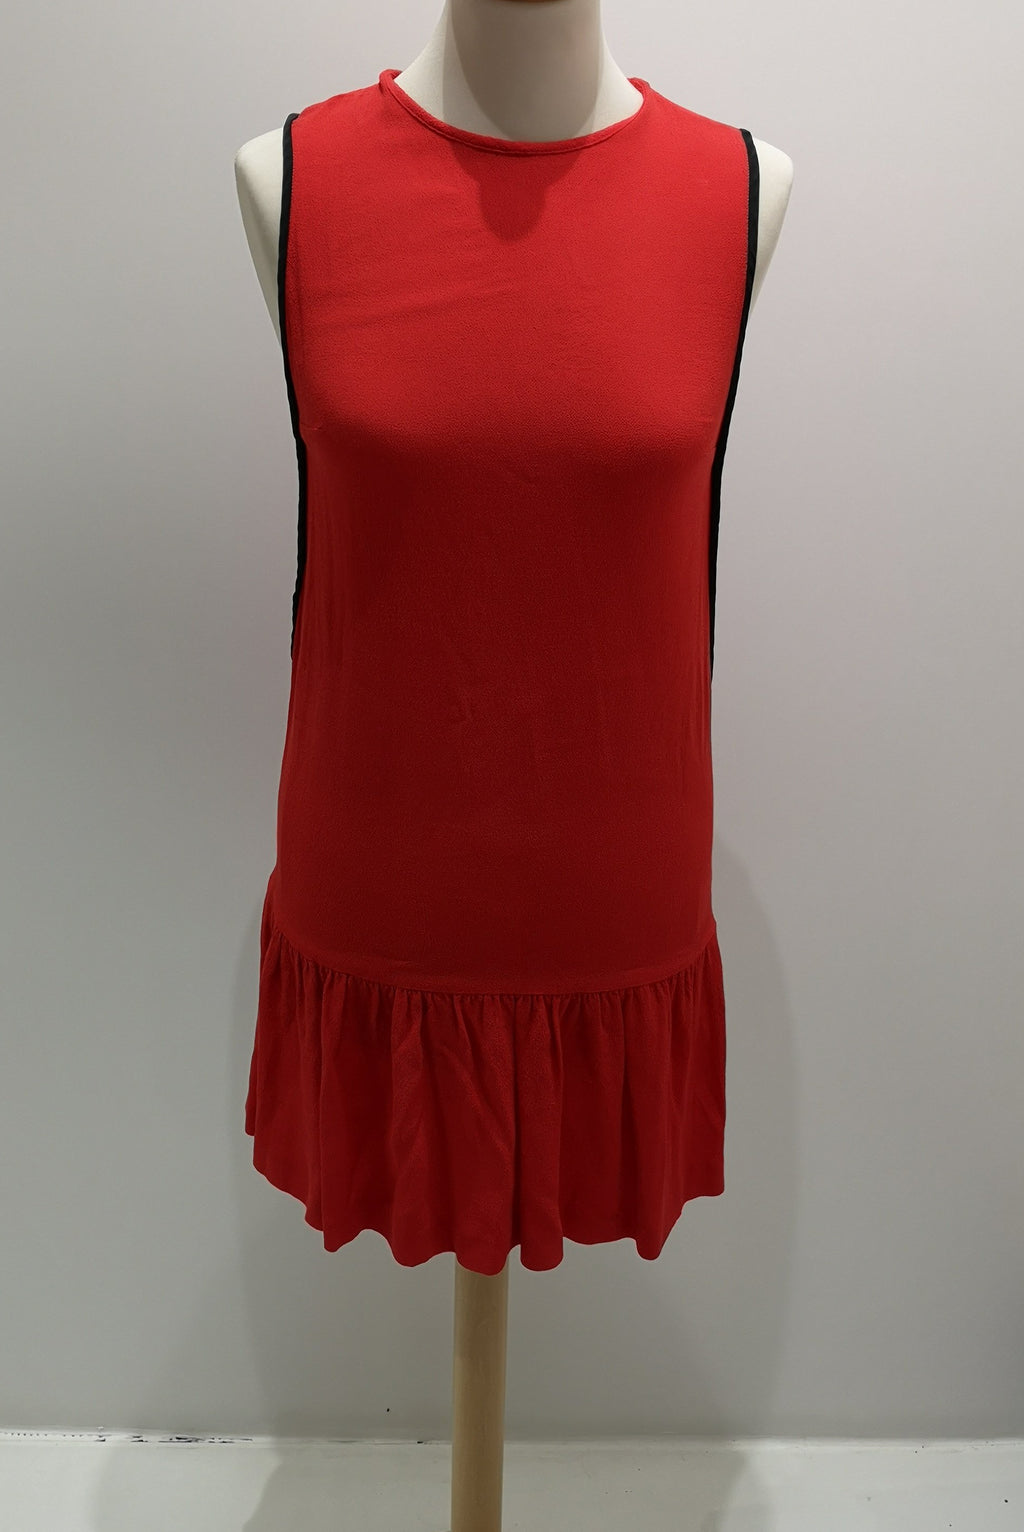 Sandro Paris Dress, Size 1 UK 8